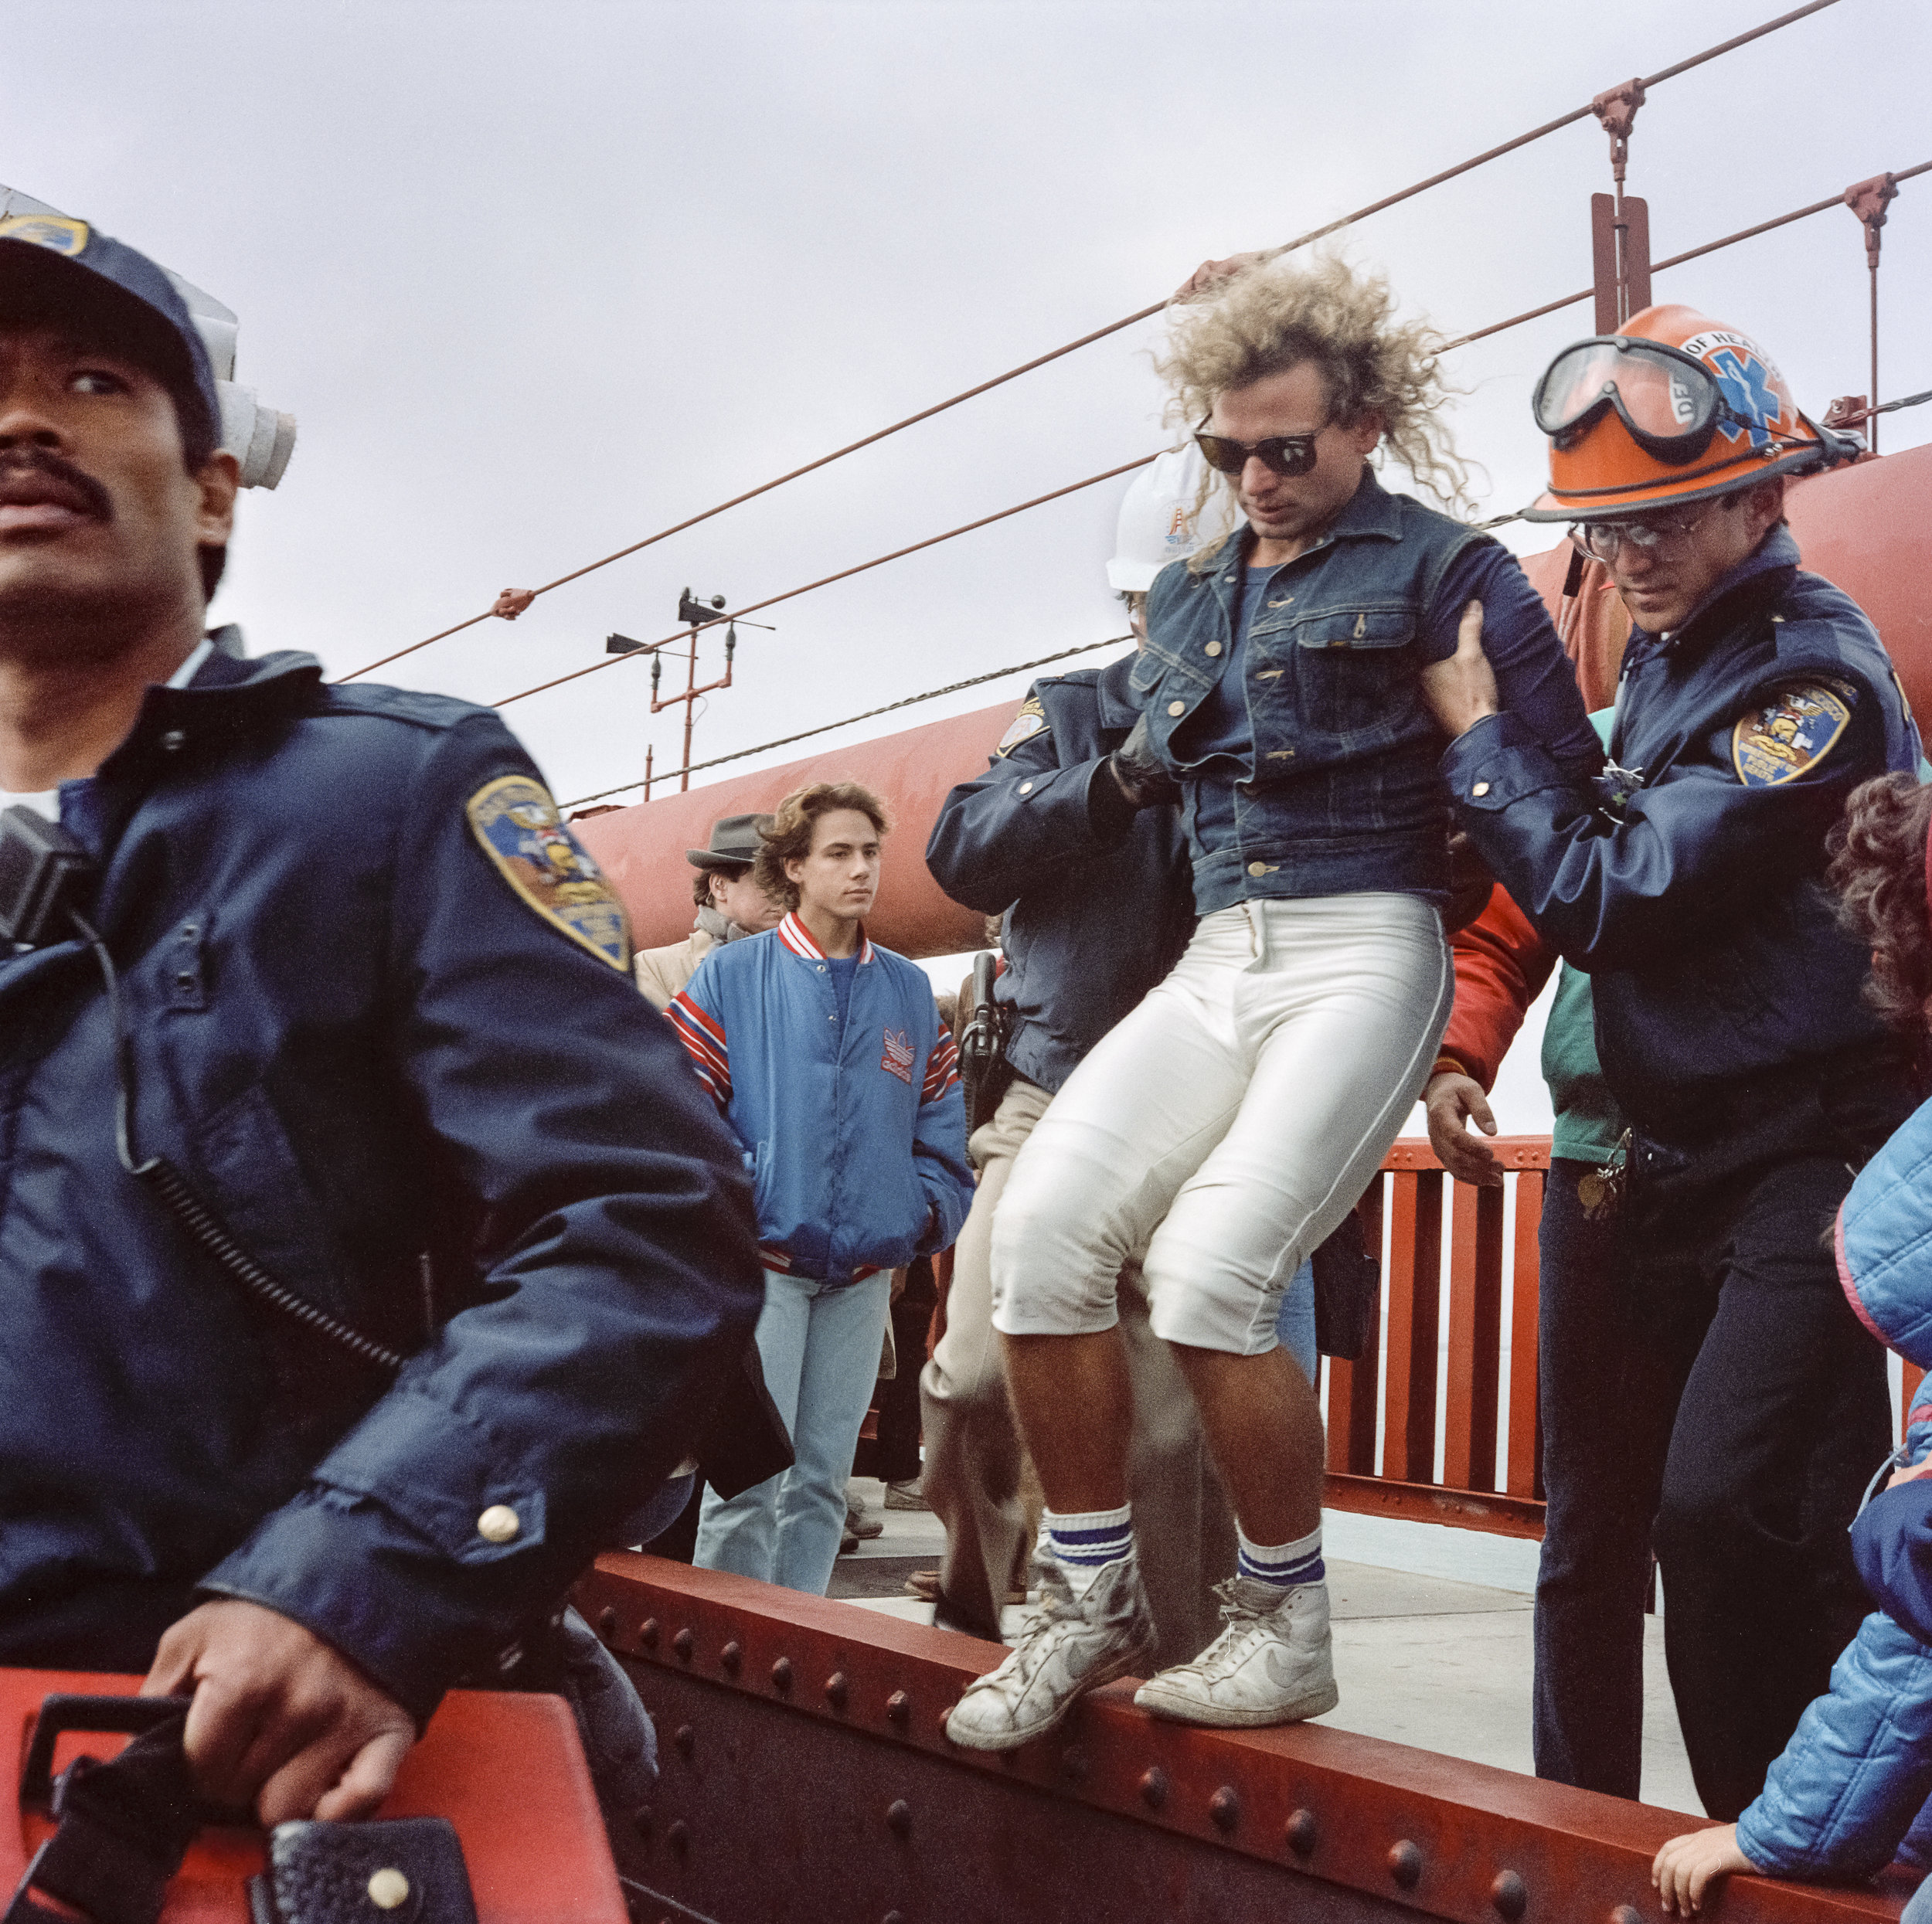 JANET DELANEY  Arrest, Golden Gate Bridge 50th Anniversary,  1987 from  Public Matters  Archival Pigment Print, 2018  Available in 2 sizes 9 x 9 inches, edition of 7 + 2AP 15 x 15 inches, edition of 3 + 2AP